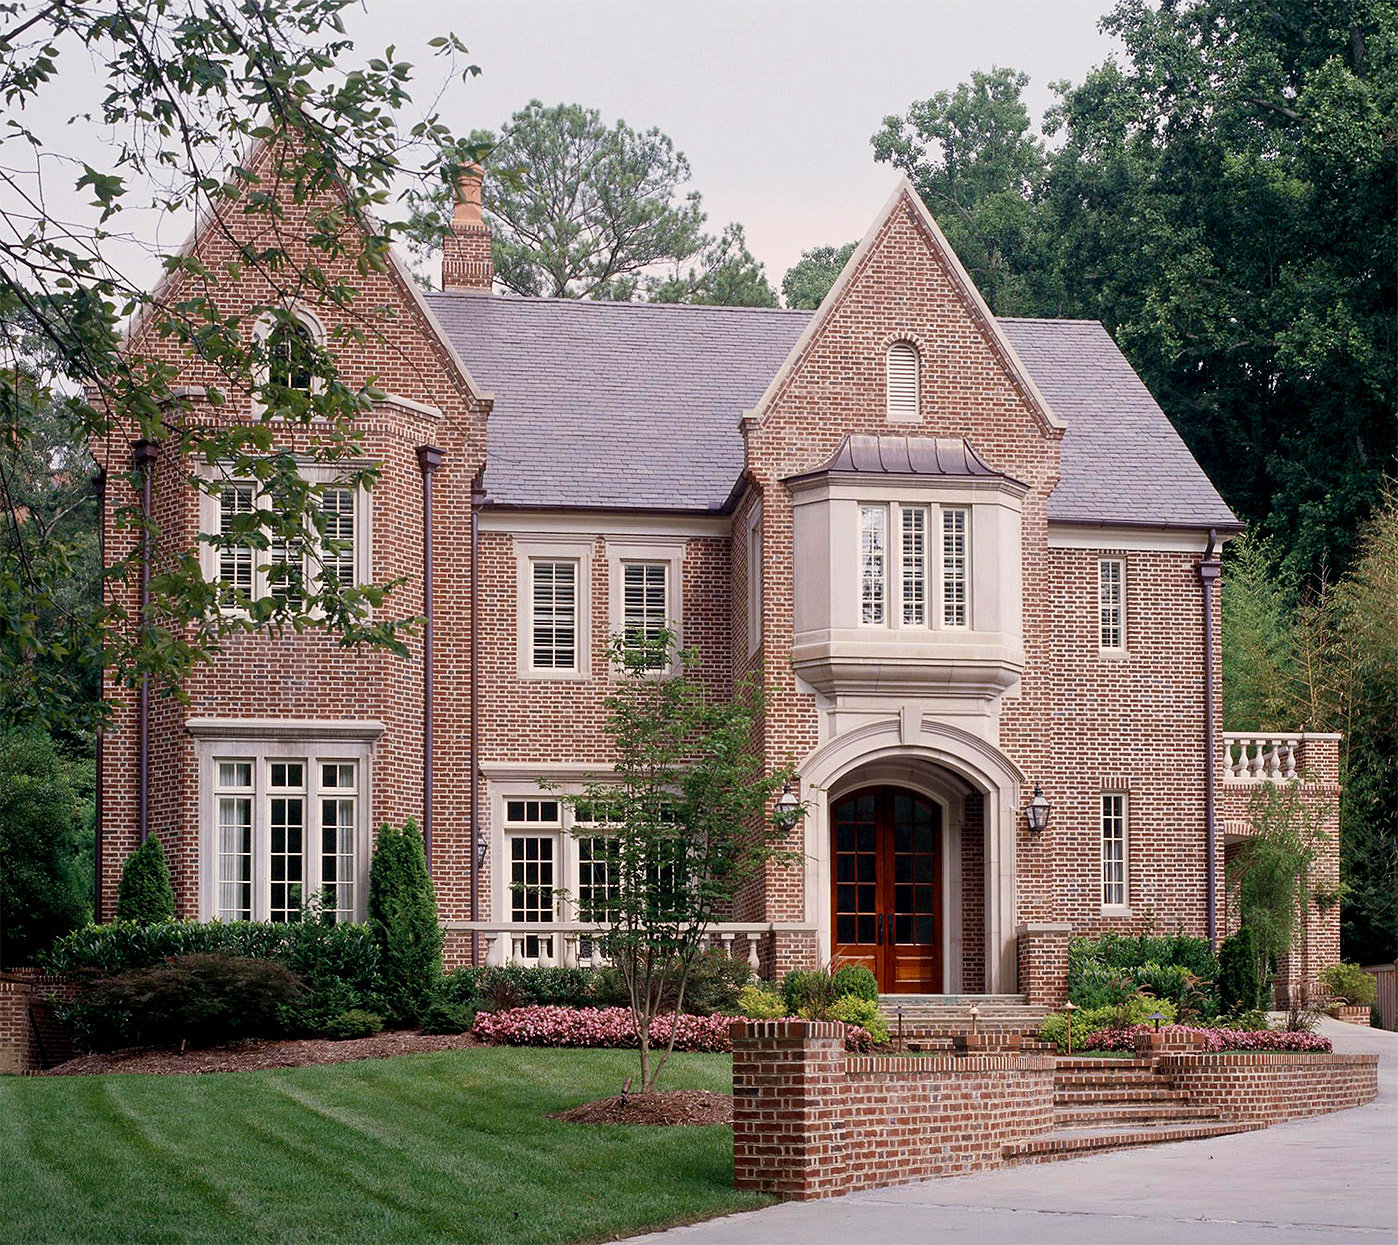 brick tudor home with grouped windows and transoms